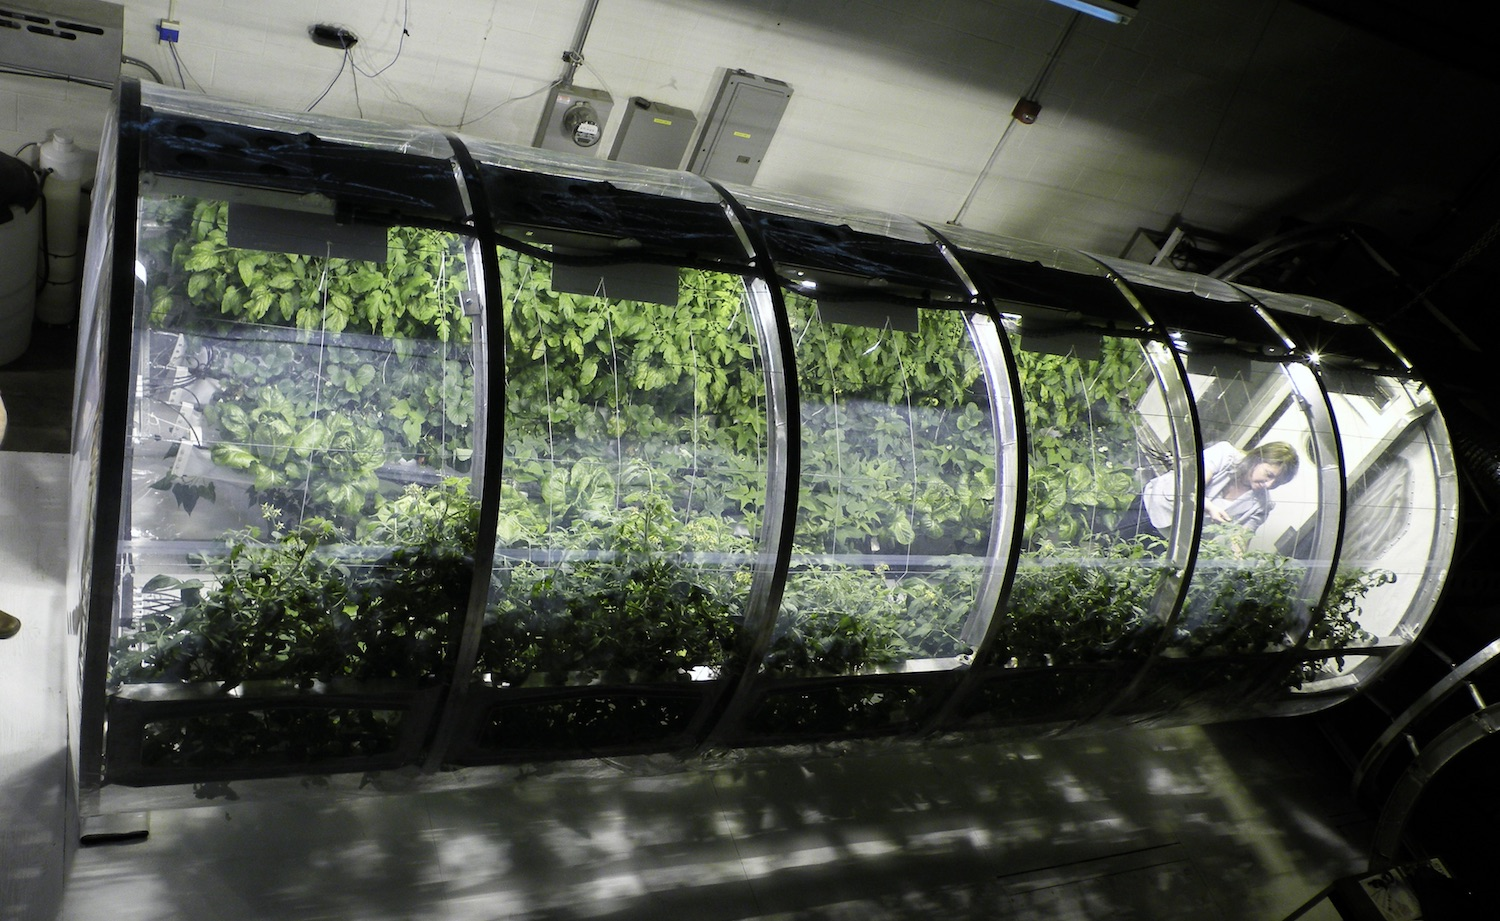 This prototype for a deployable greenhouse could provide fresh food and recycled air for astronauts on the Moon or Mars.  Credit: University of Arizona